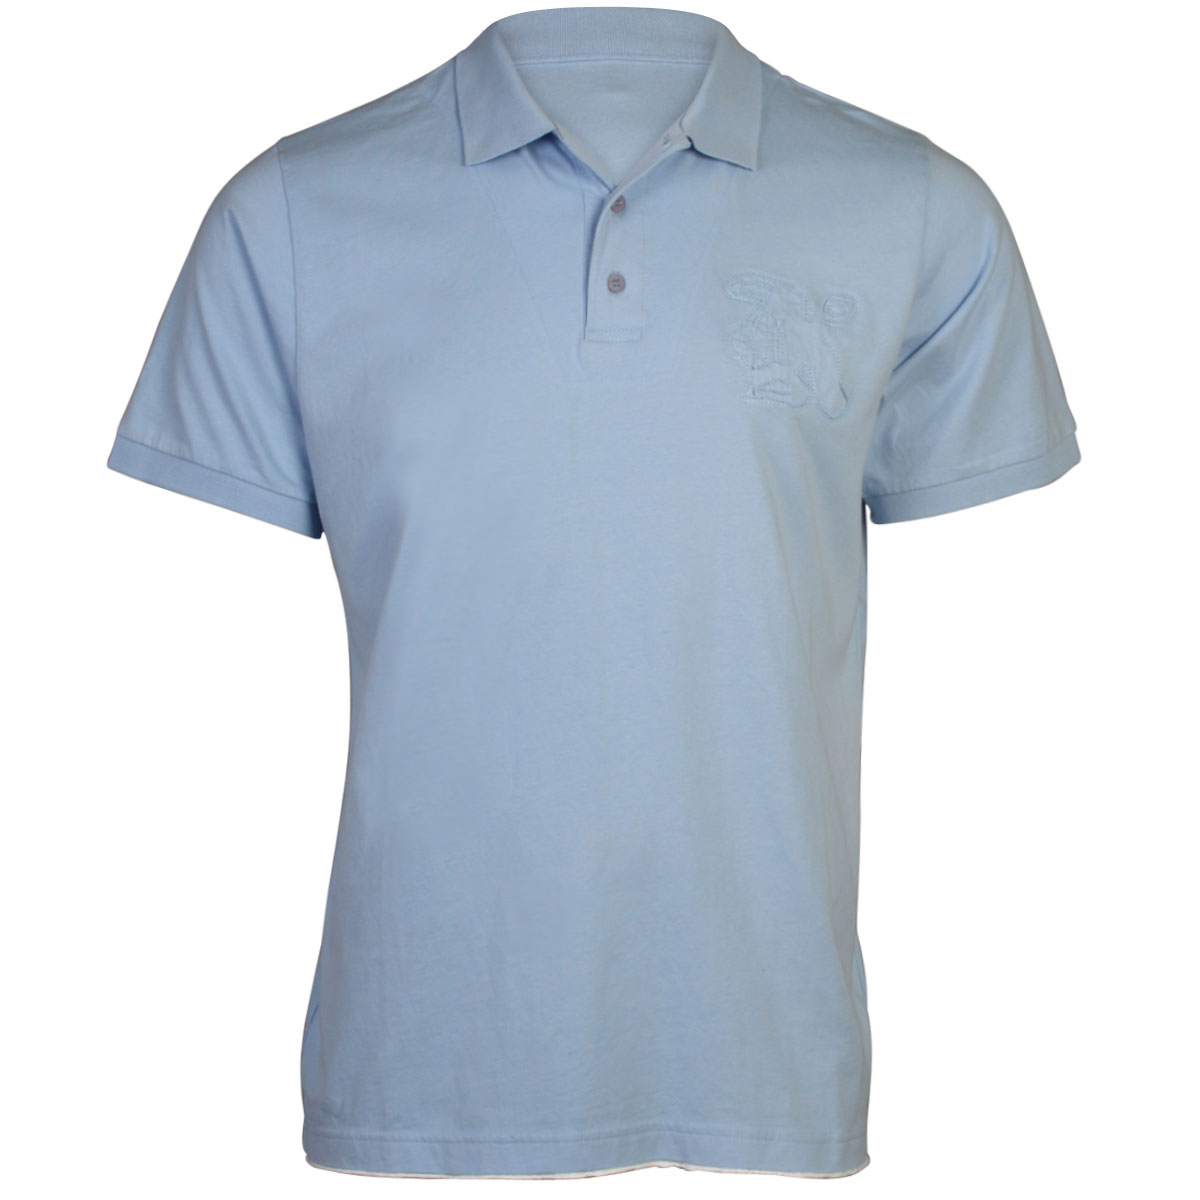 Ebay for Polo shirts without buttons